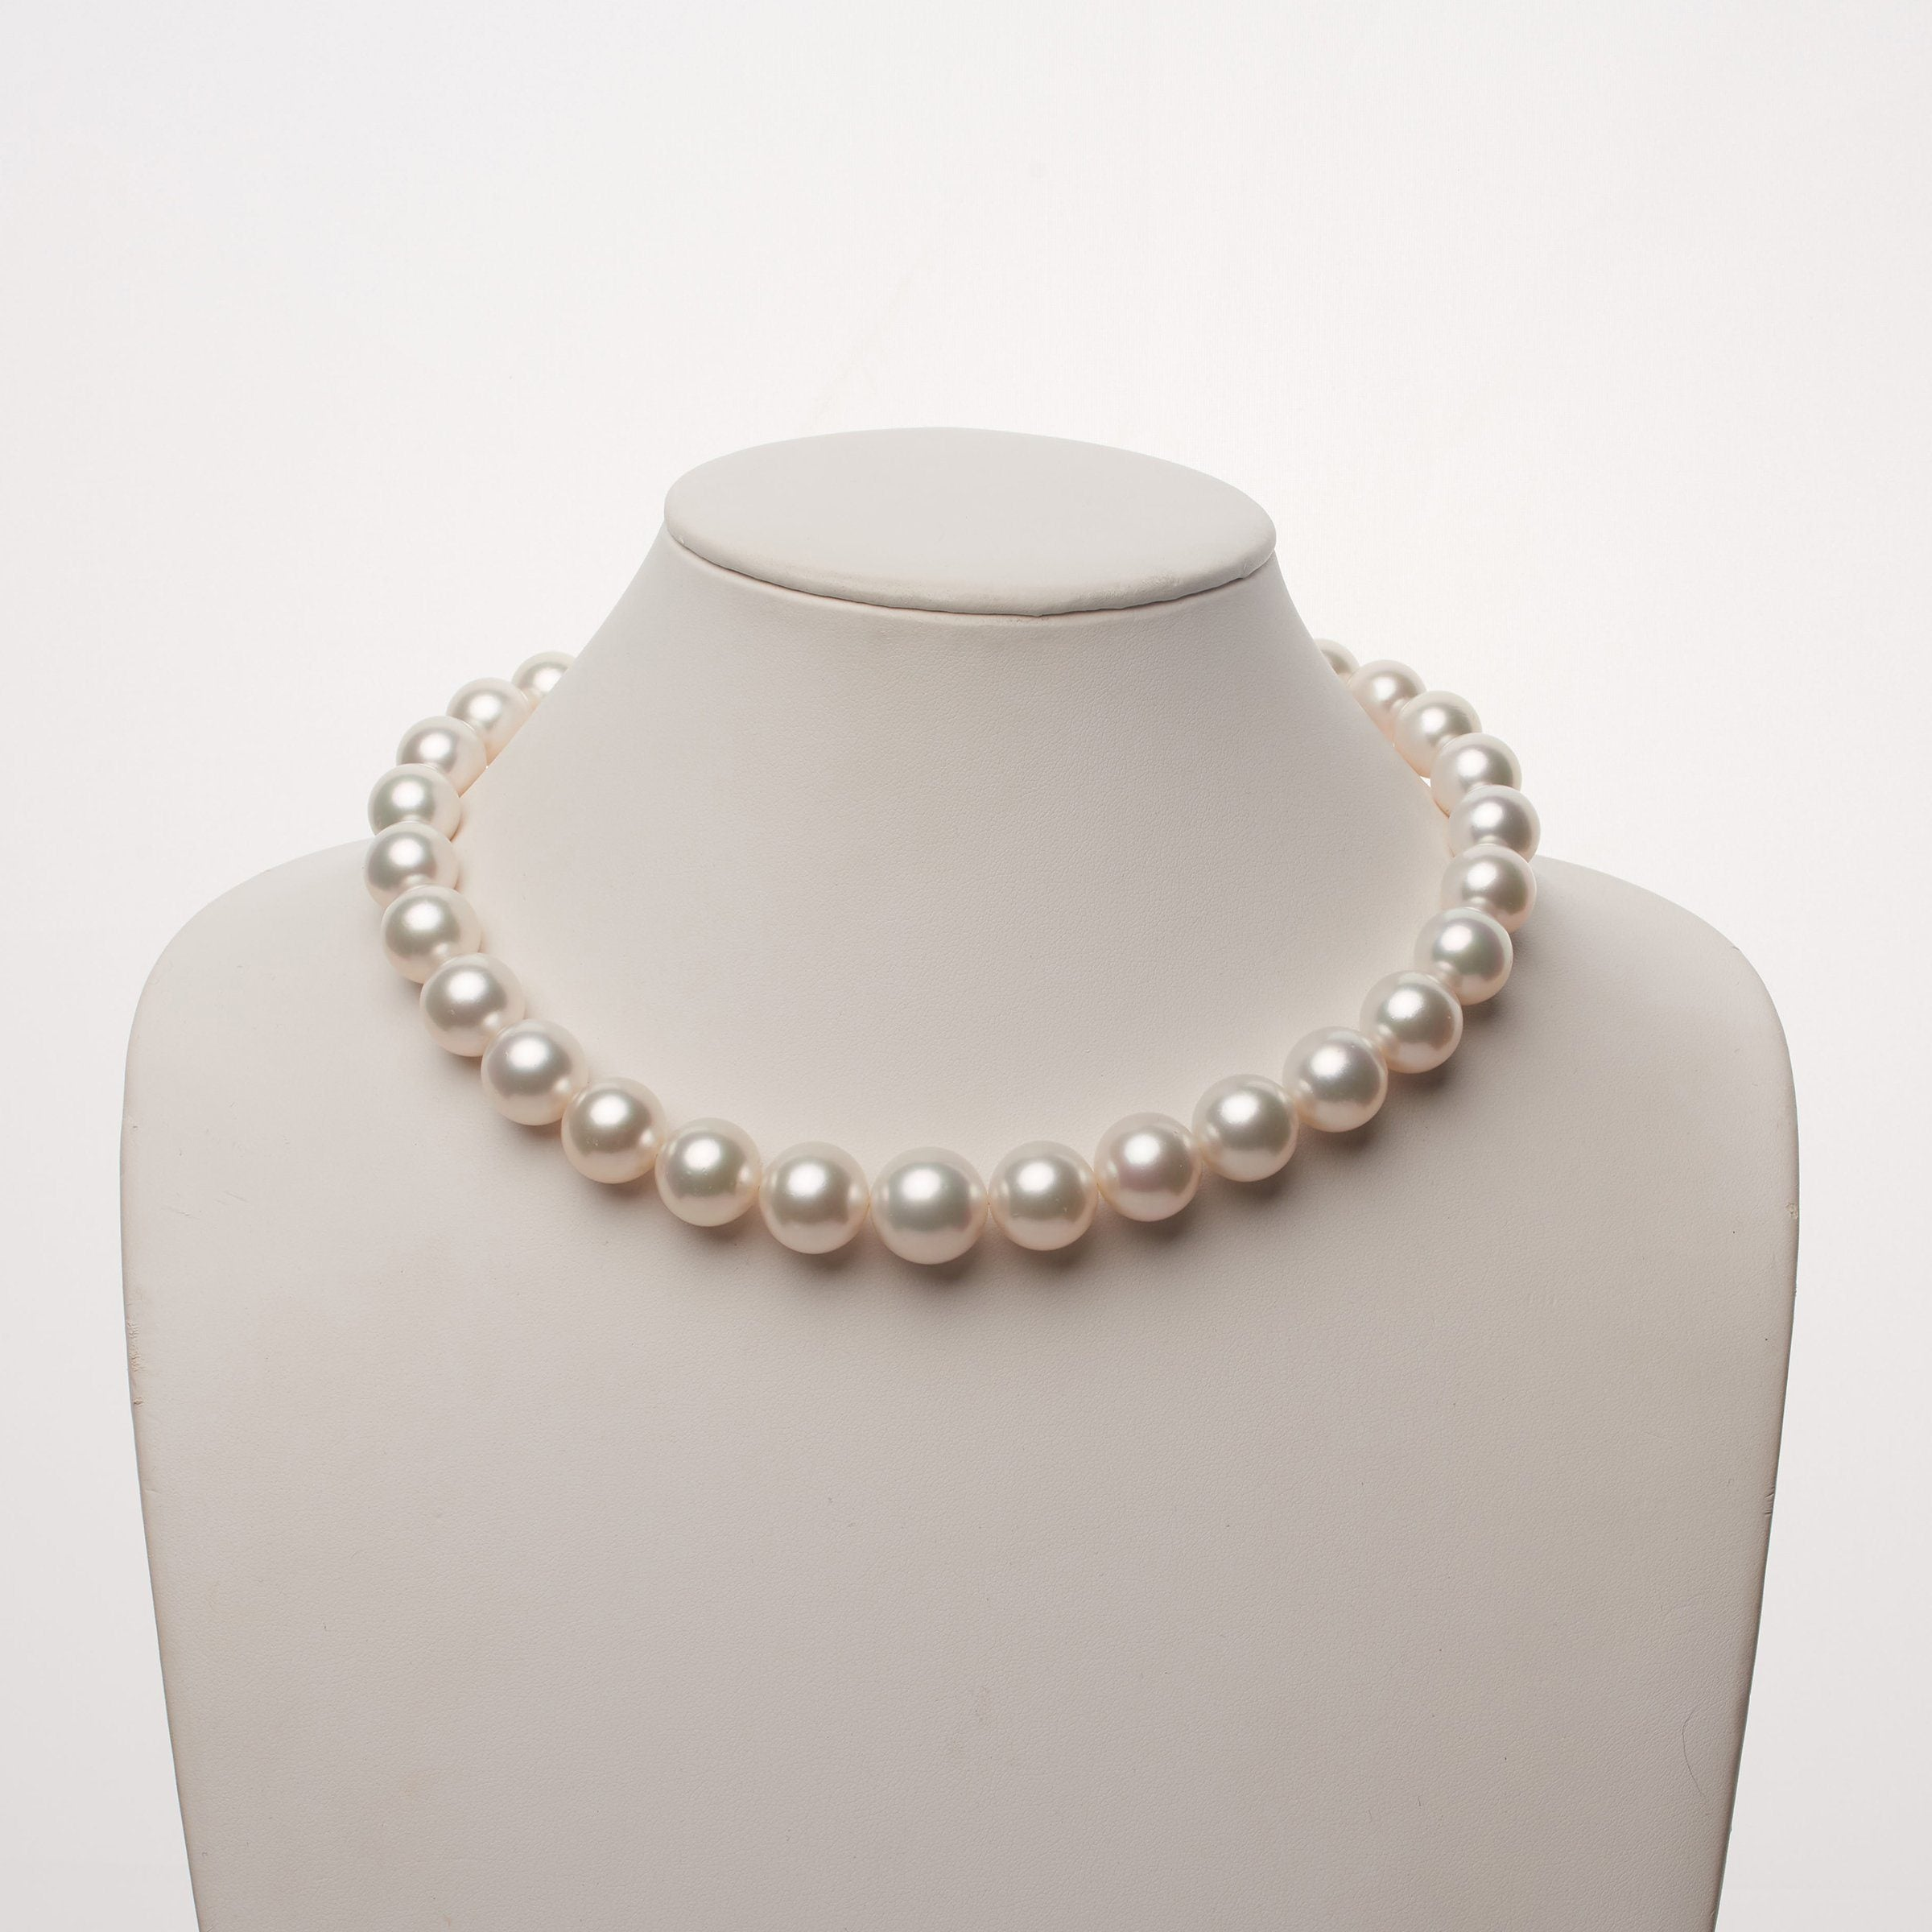 The Motif White South Sea Pearl Necklace